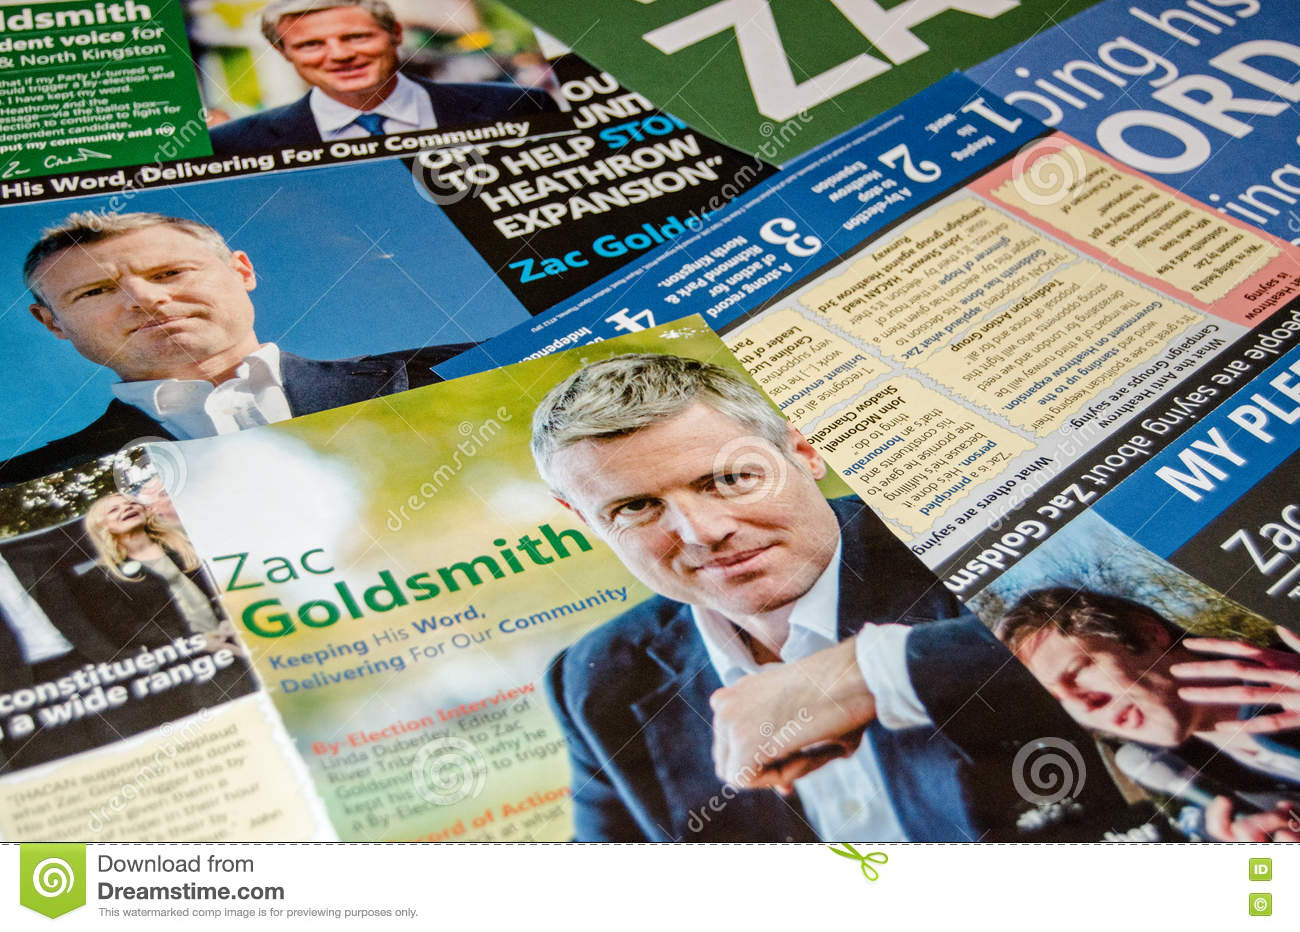 Zac Goldsmith by-election leaflets